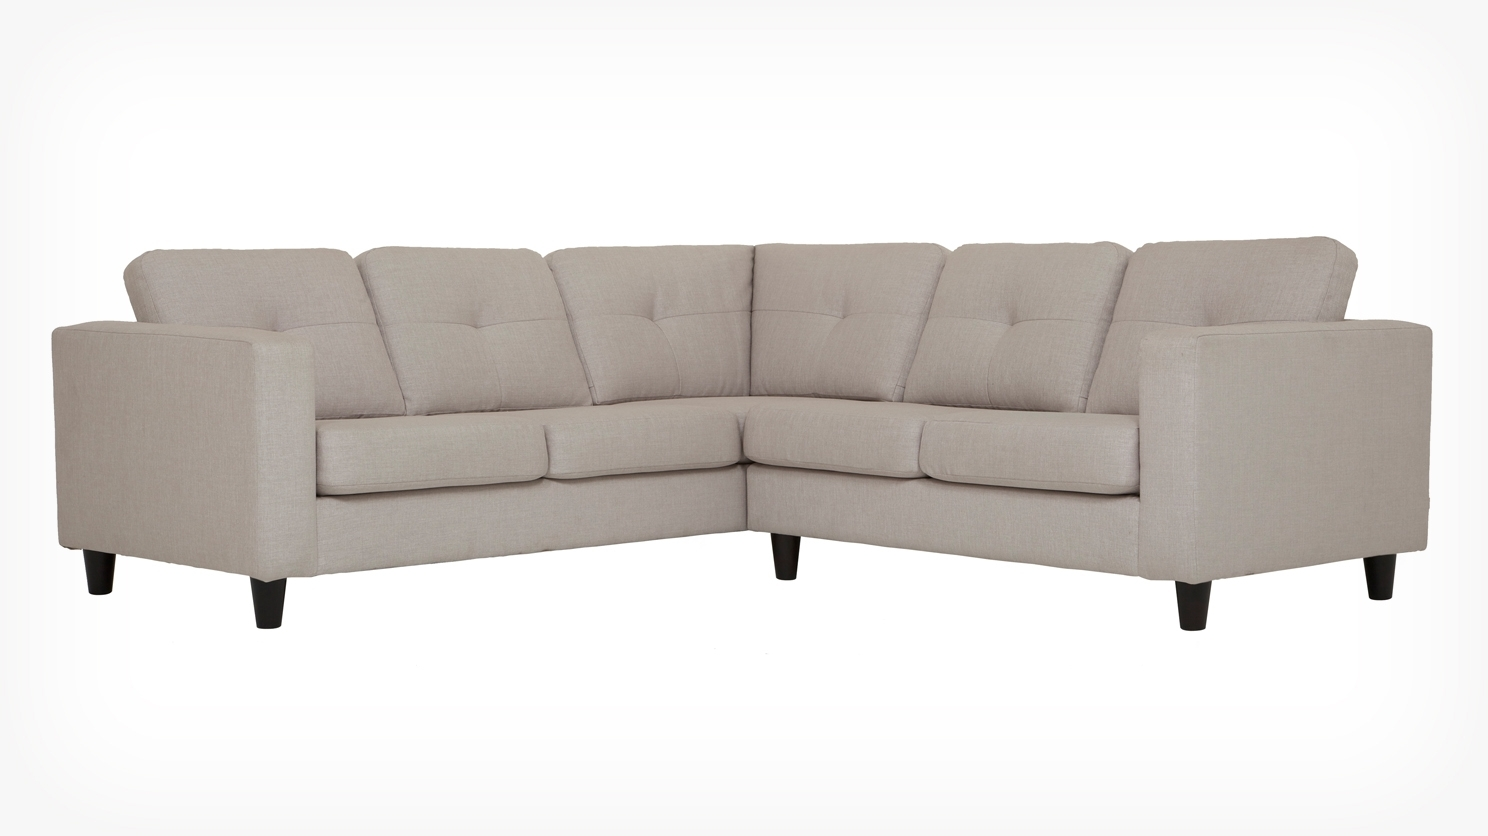 Eq3 | Living > Seating > Sectionals Inside Eq3 Sectional Sofas (View 3 of 10)